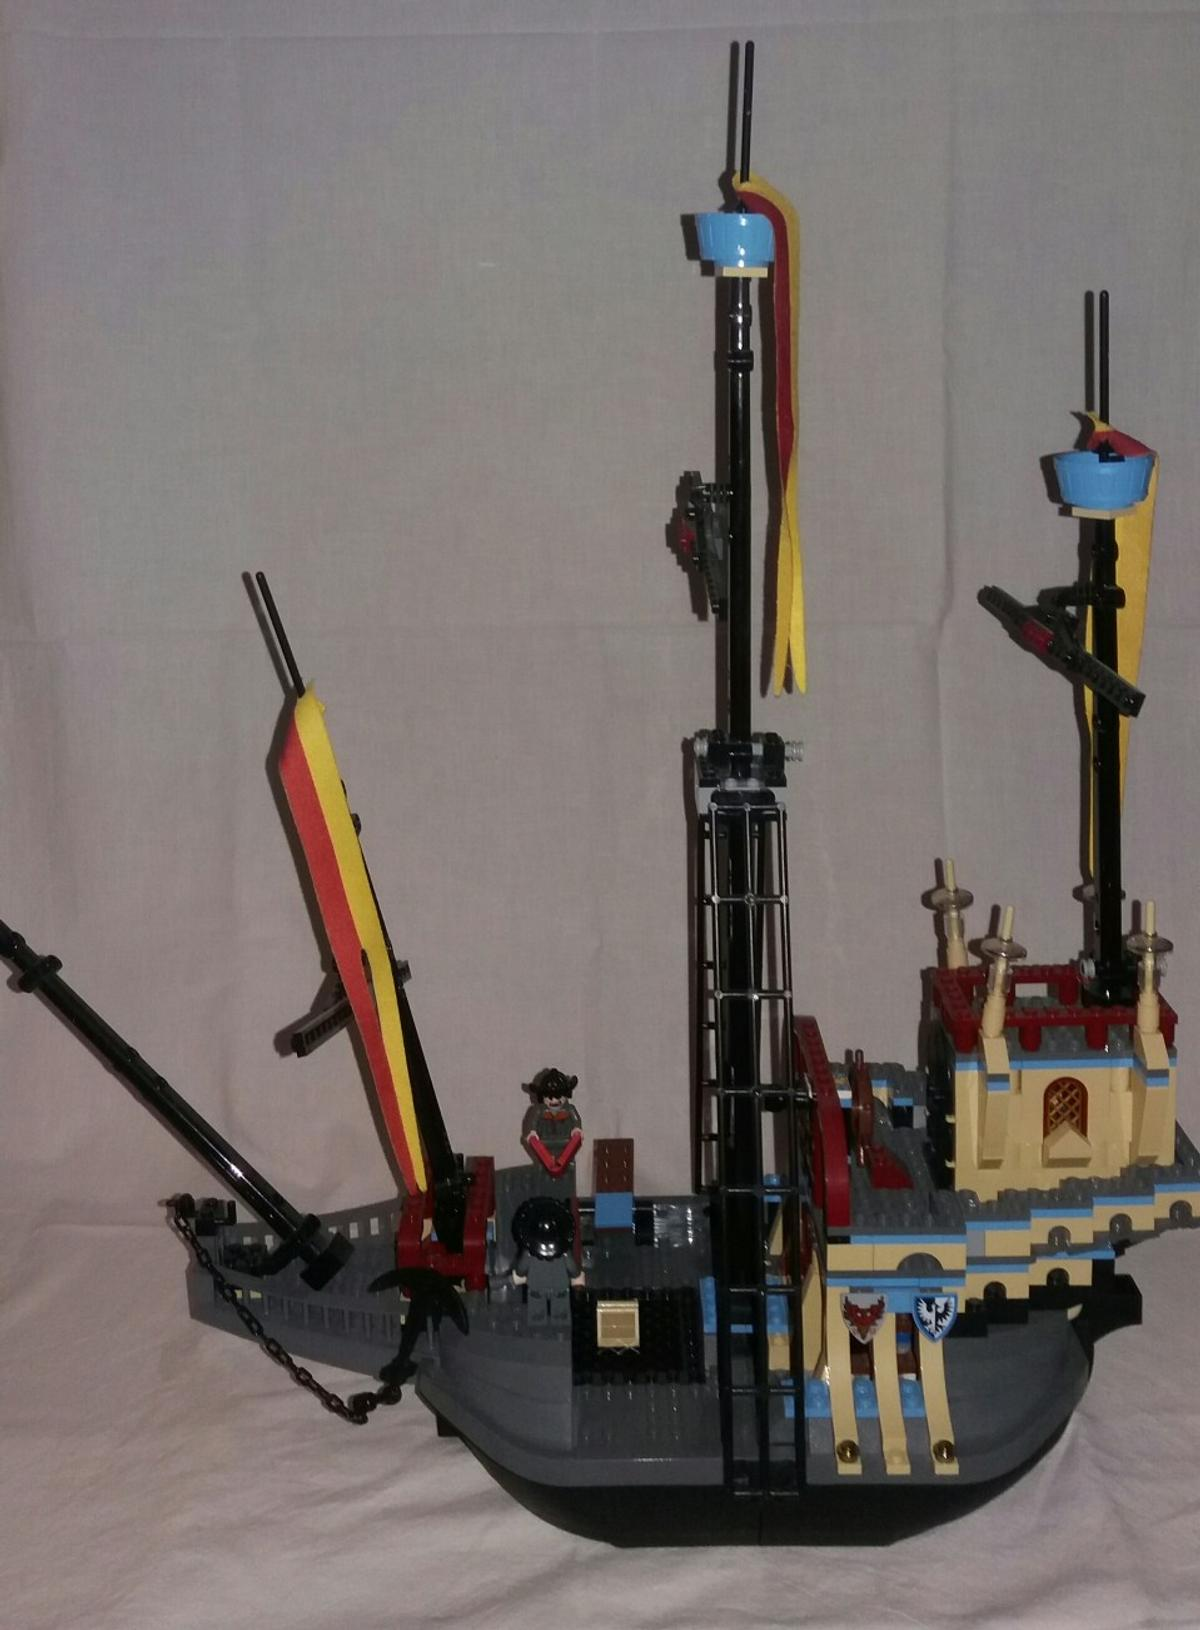 Durmstrang Schiff Aus Harry Potter Von Lego In 31608 Marklohe For 115 00 For Sale Shpock Beauxbatons academy of magic, фр. durmstrang schiff aus harry potter von